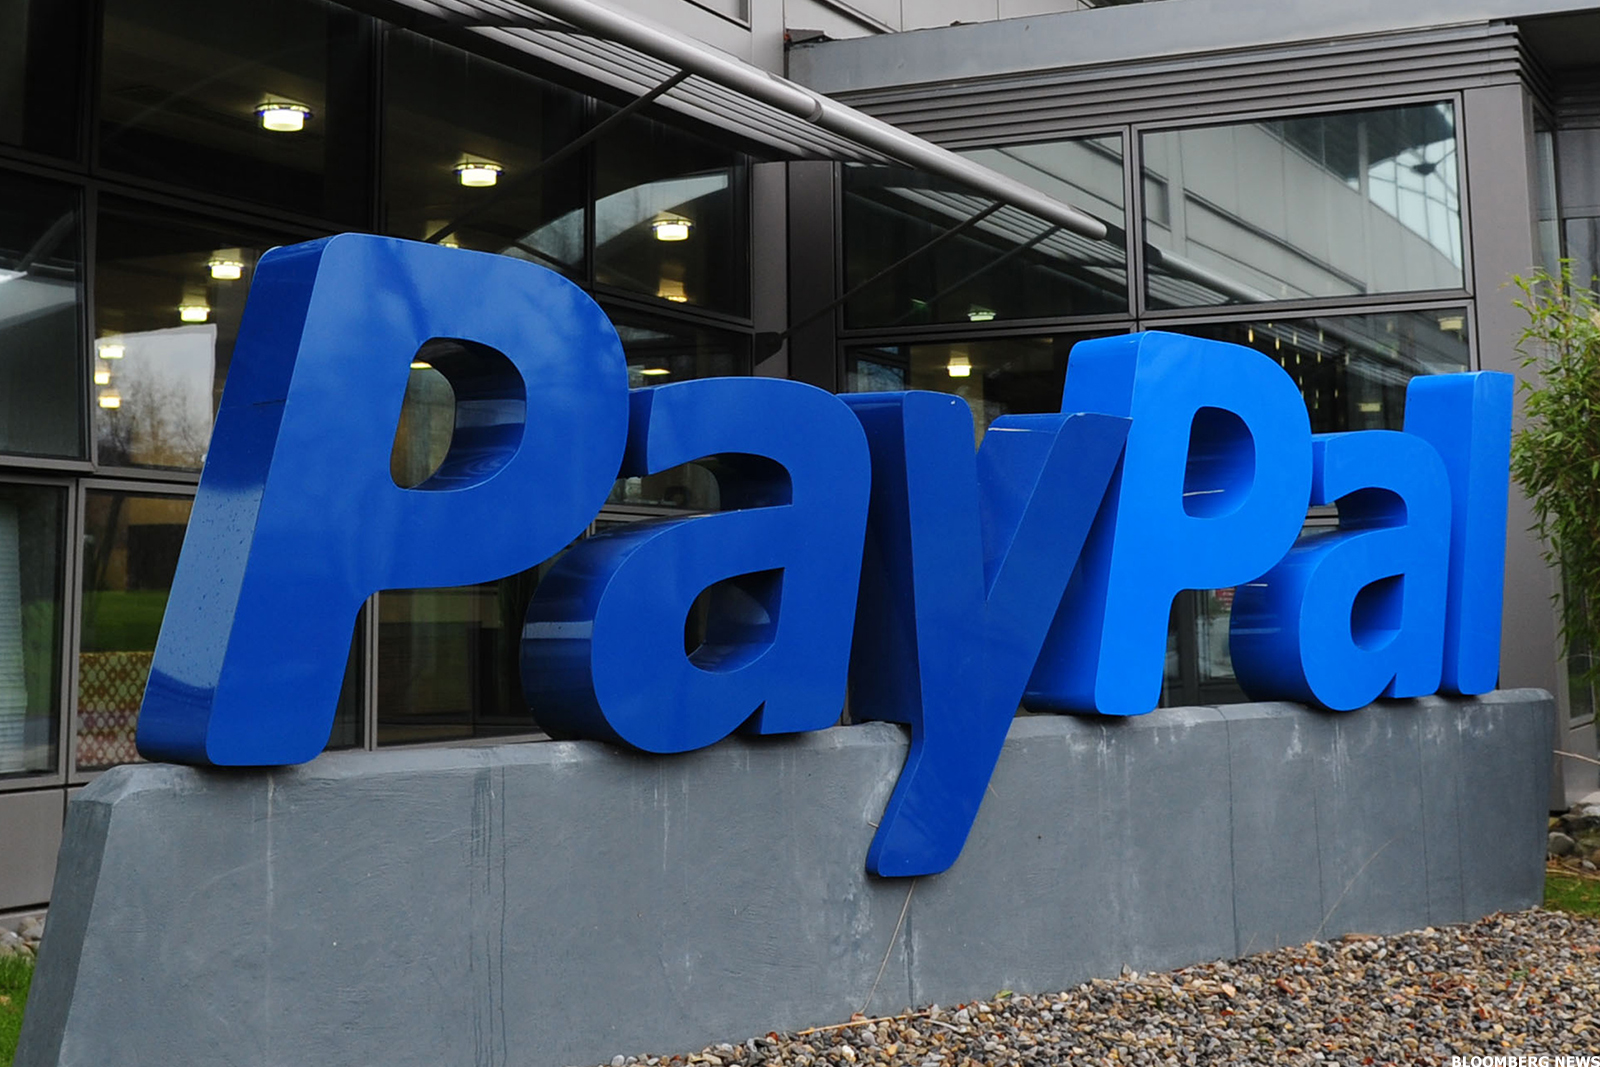 Paypal pypl stock should go dramatically higher jim cramer says paypal pypl stock should go dramatically higher jim cramer says thestreet biocorpaavc Choice Image